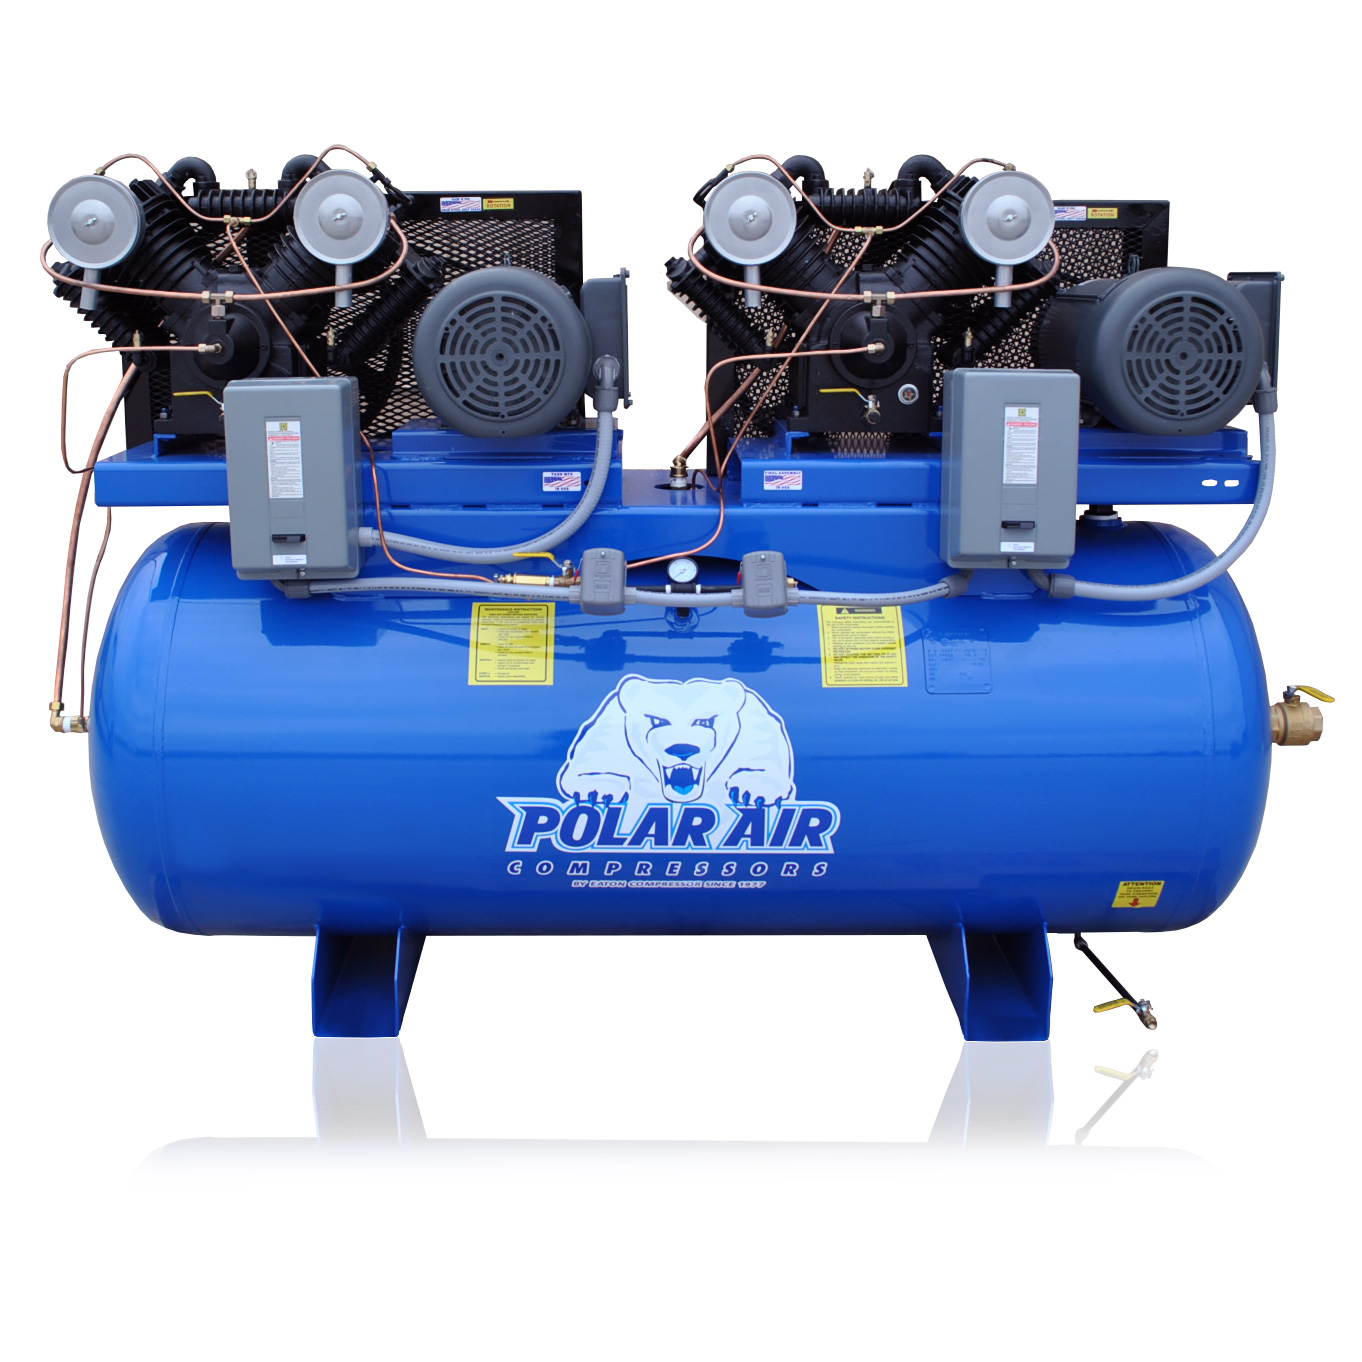 Rotary Screw Air Compressors | Industrial Air Compressors